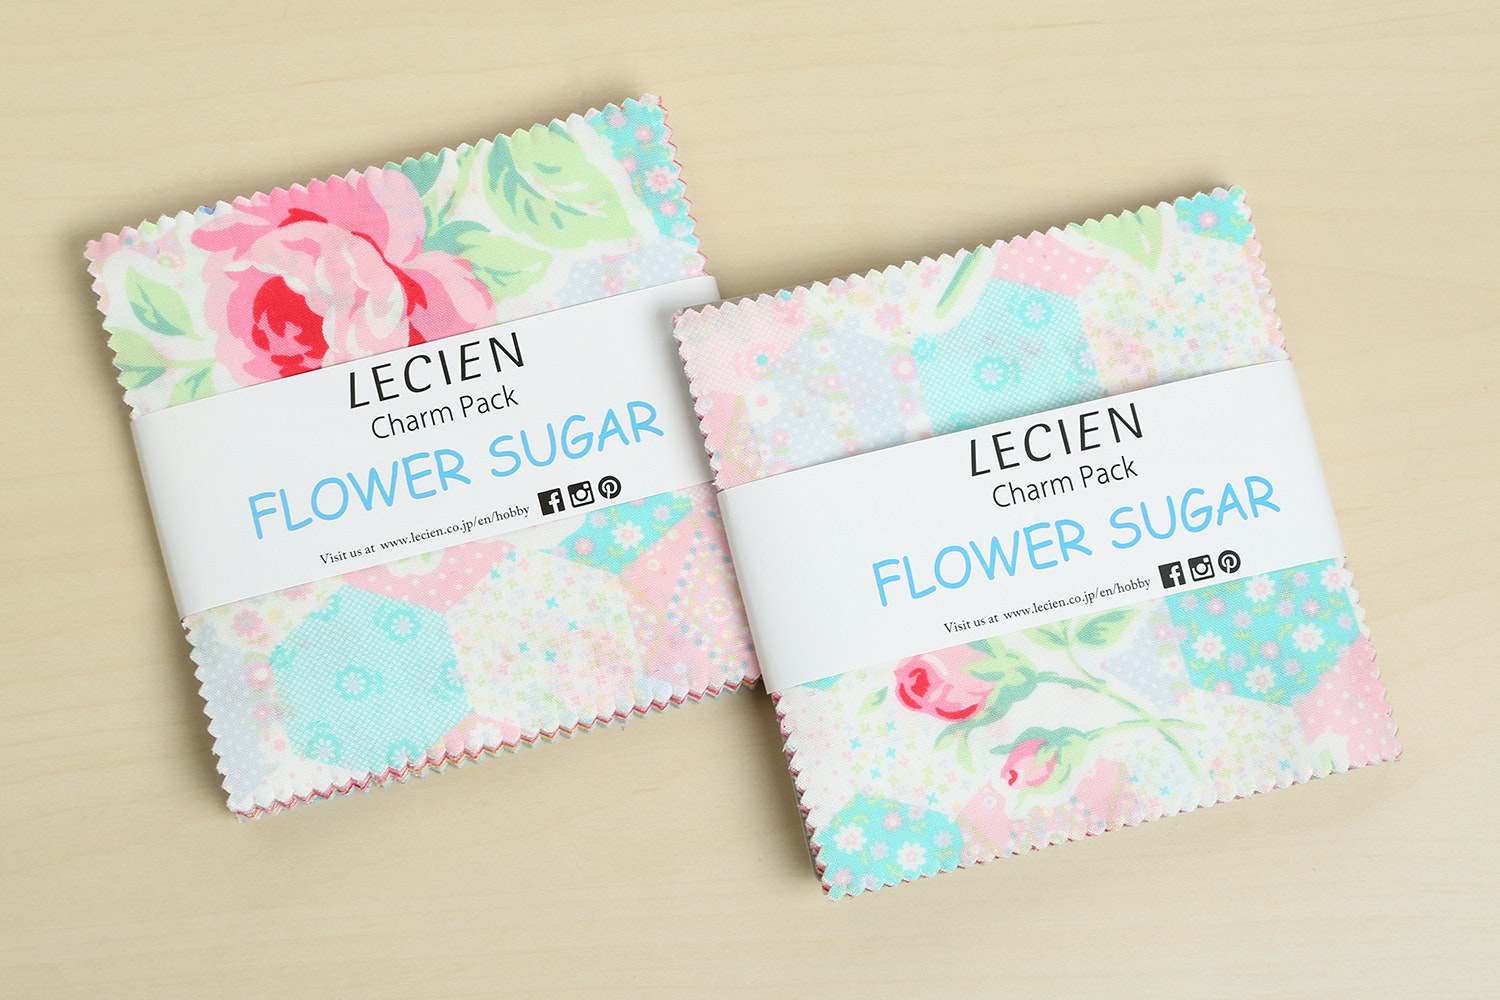 Flower Sugar Spring Charm Squares (2-Pack)